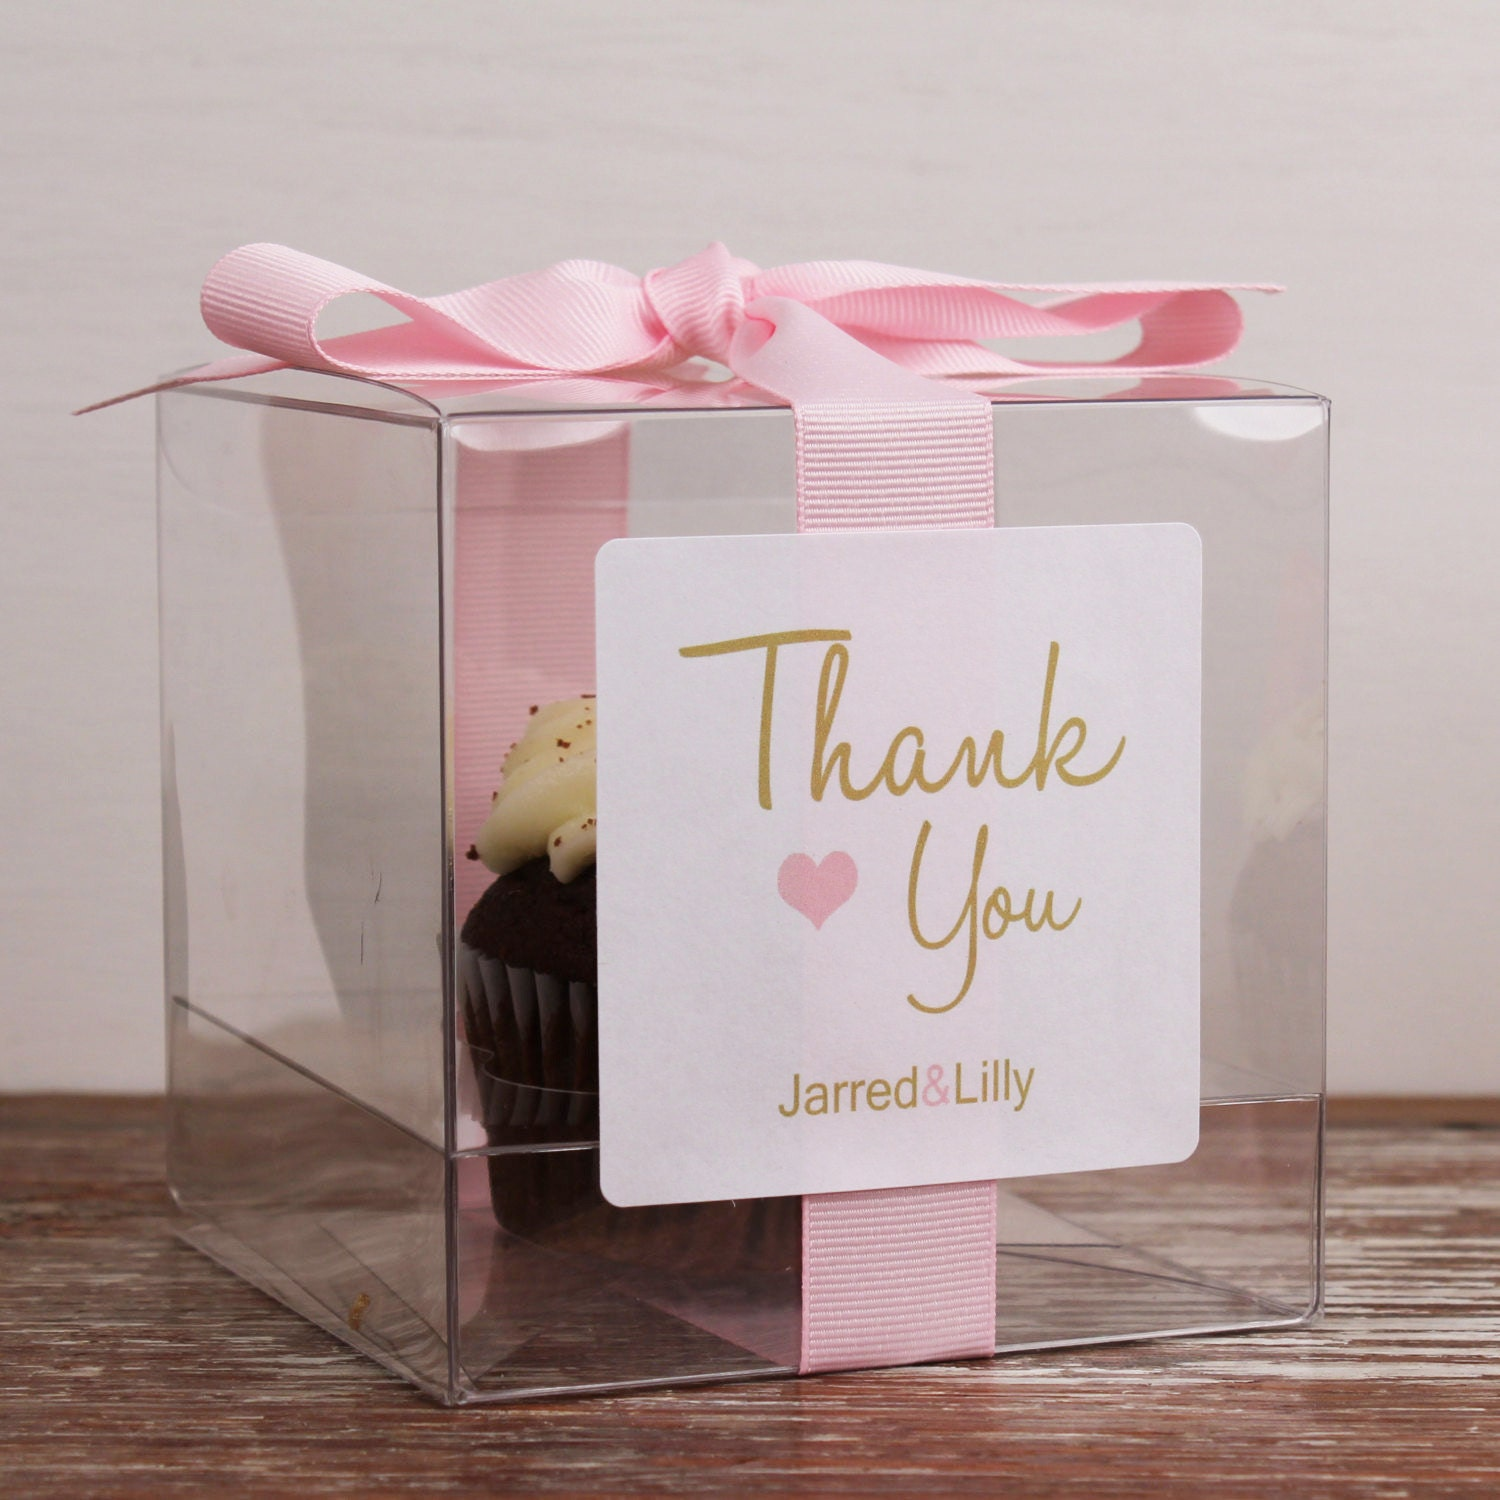 8 wedding favor cupcake boxes thank you design any. Black Bedroom Furniture Sets. Home Design Ideas